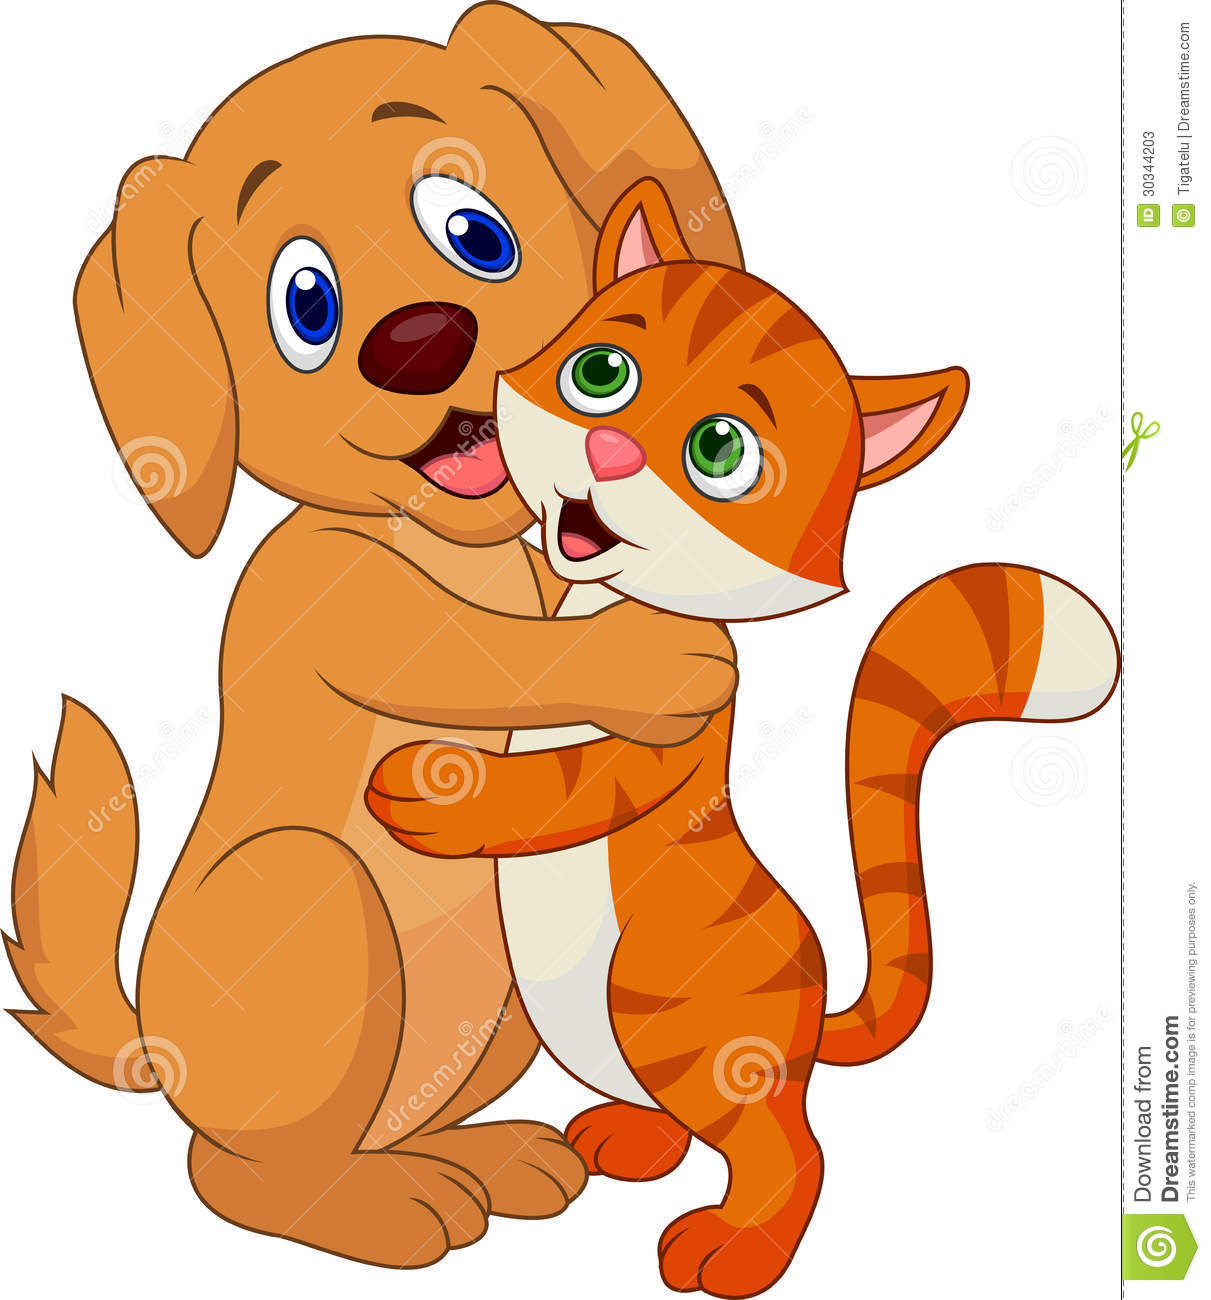 Illustration of cute dog and cat cartoon embracing each other